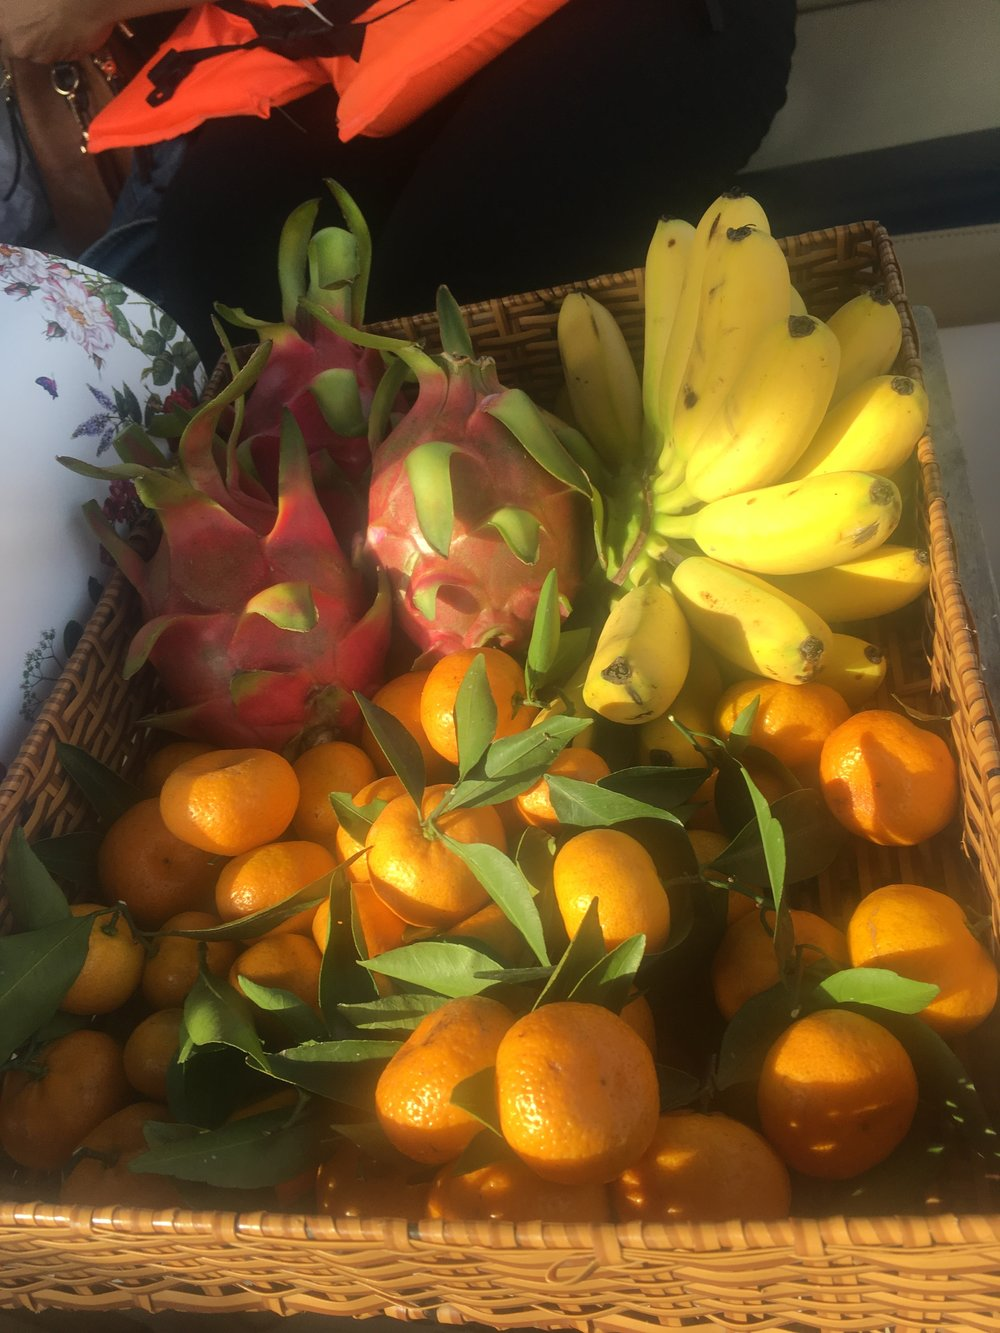 Tropical fruits from the Mekong Delta